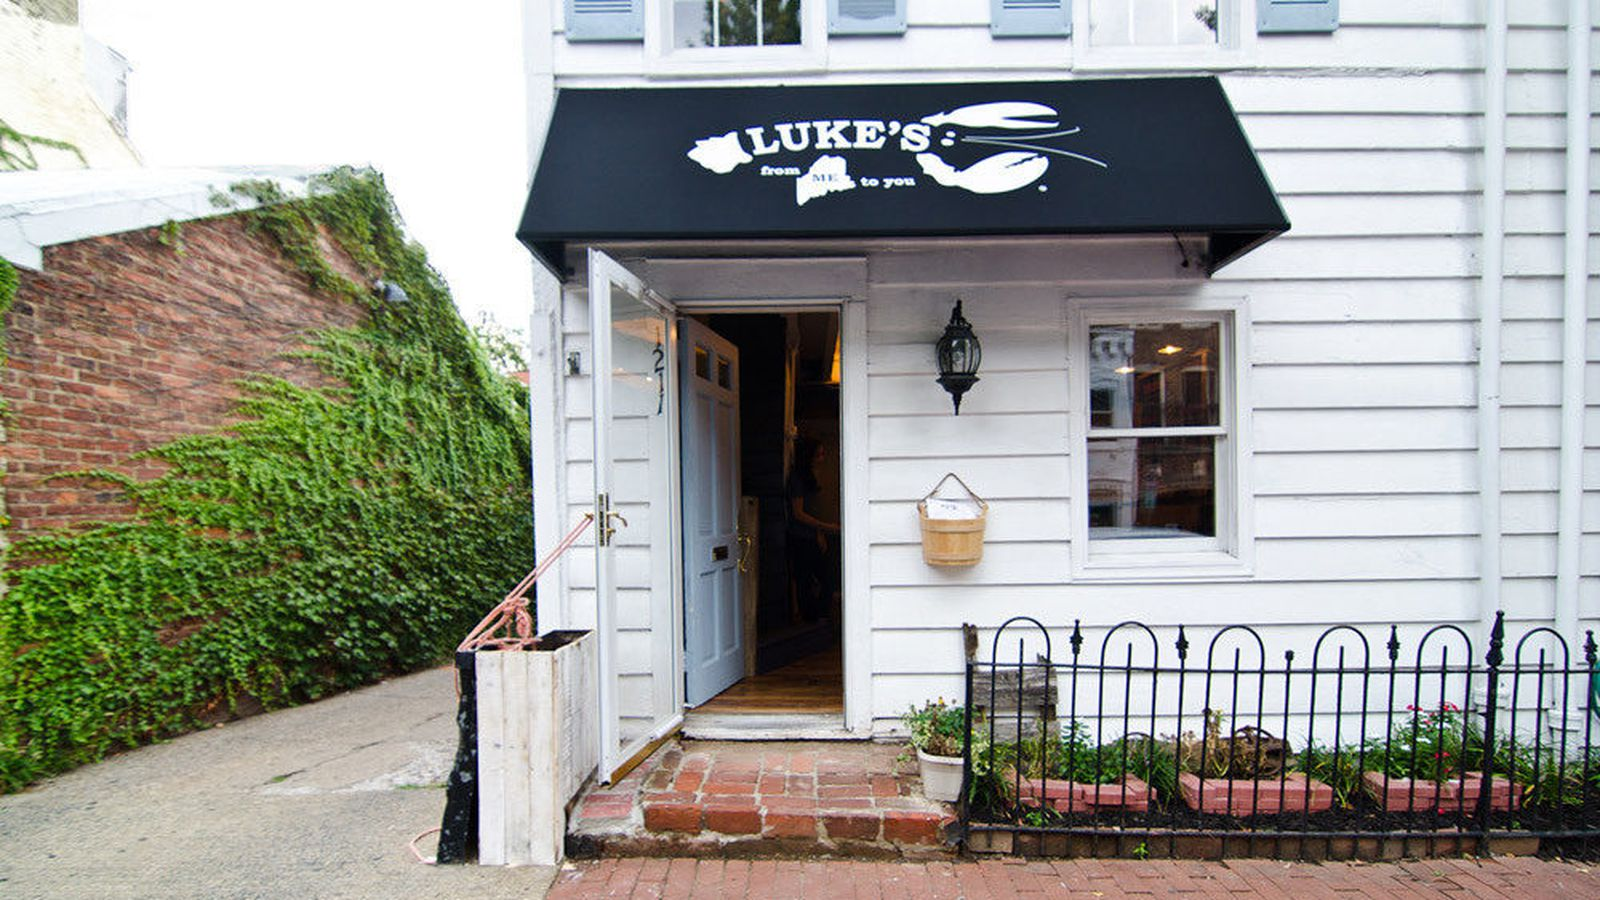 Luke's Lobster Union Station Opens May 1, with Breakfast - Eater DC